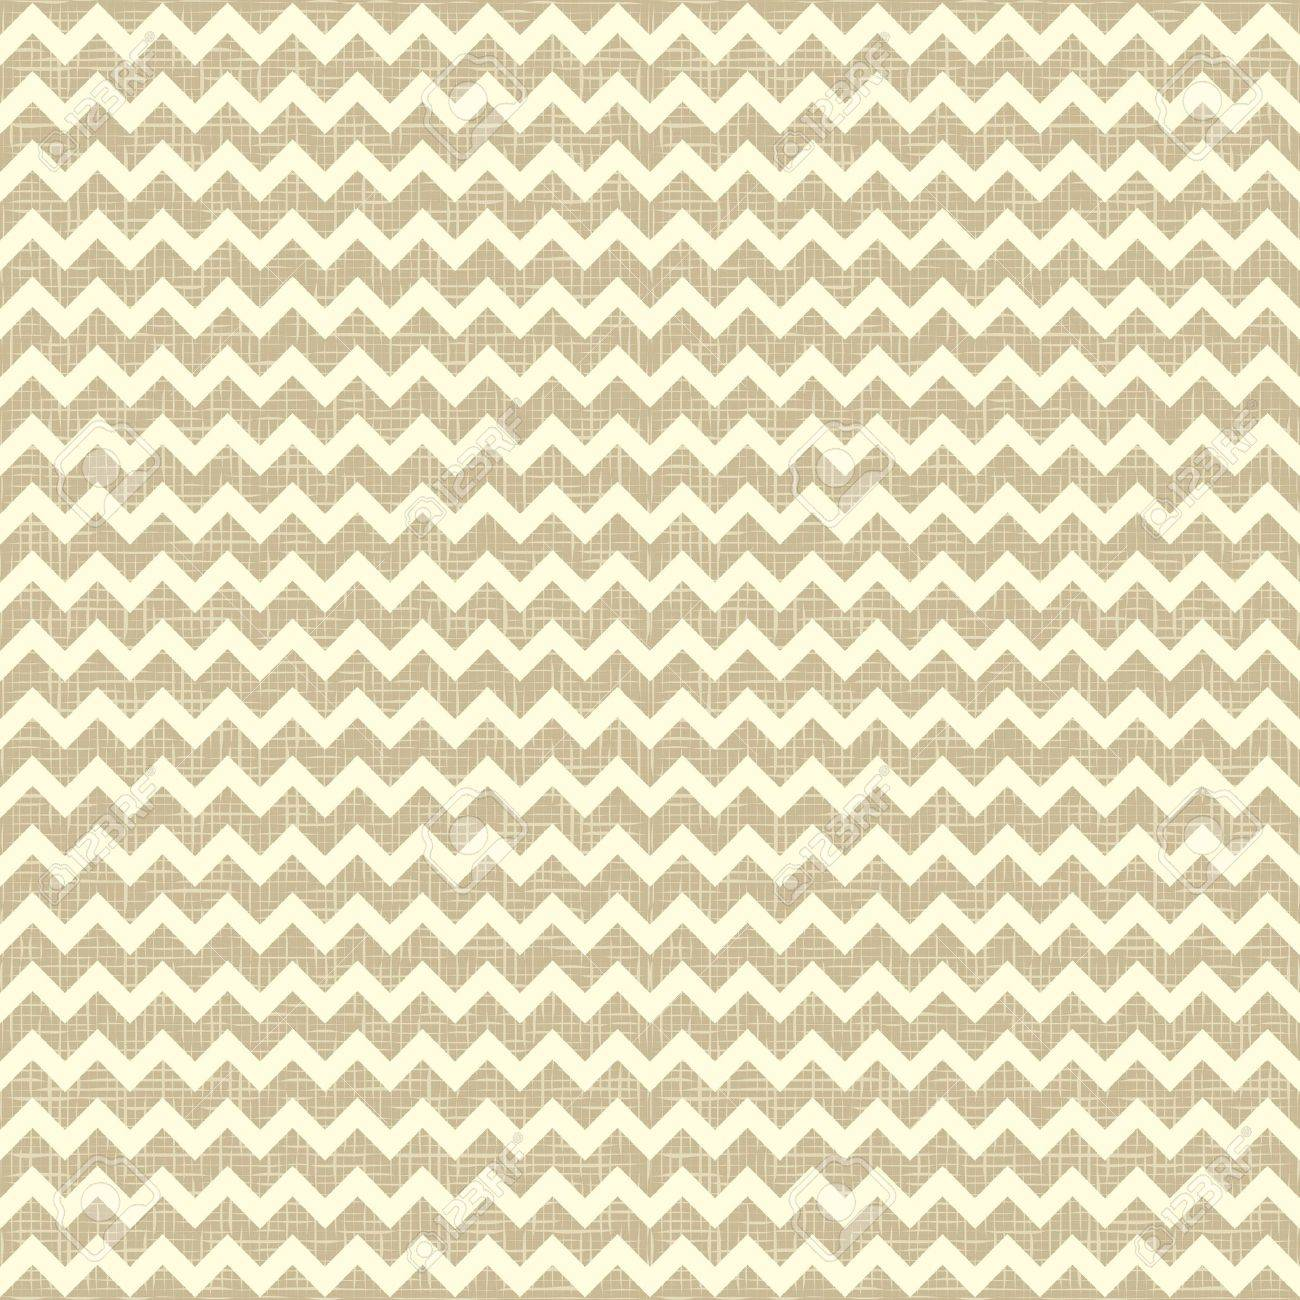 Seamless chevron pattern on linen canvas background  Vintage rustic burlap zigzag Stock Vector - 13271530